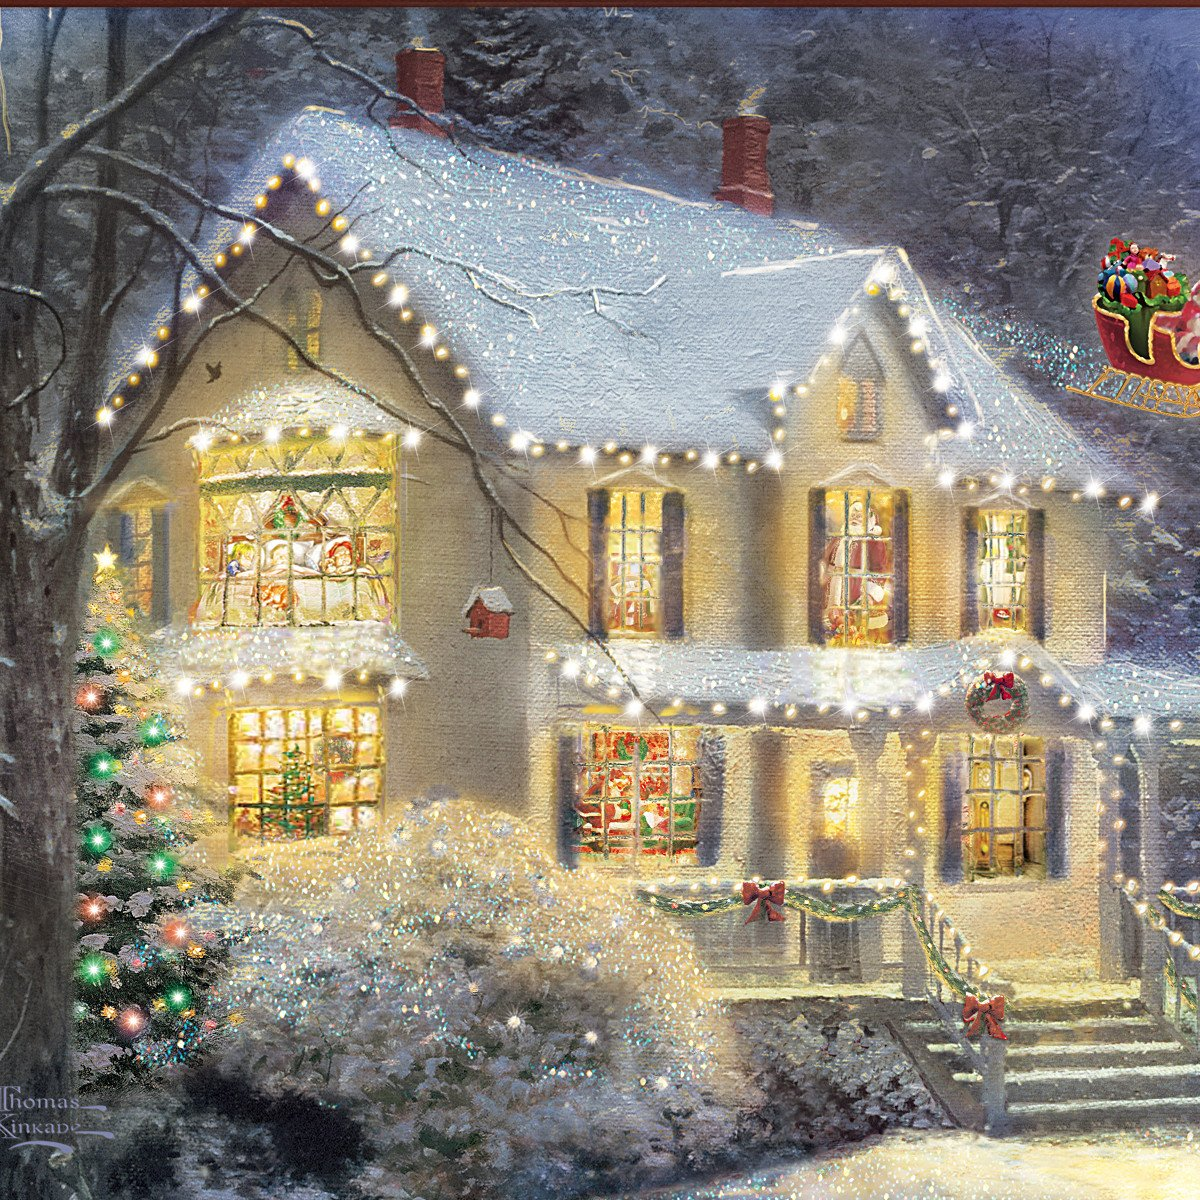 Amazon.com: Thomas Kinkade The Night Before Christmas Illuminated ...